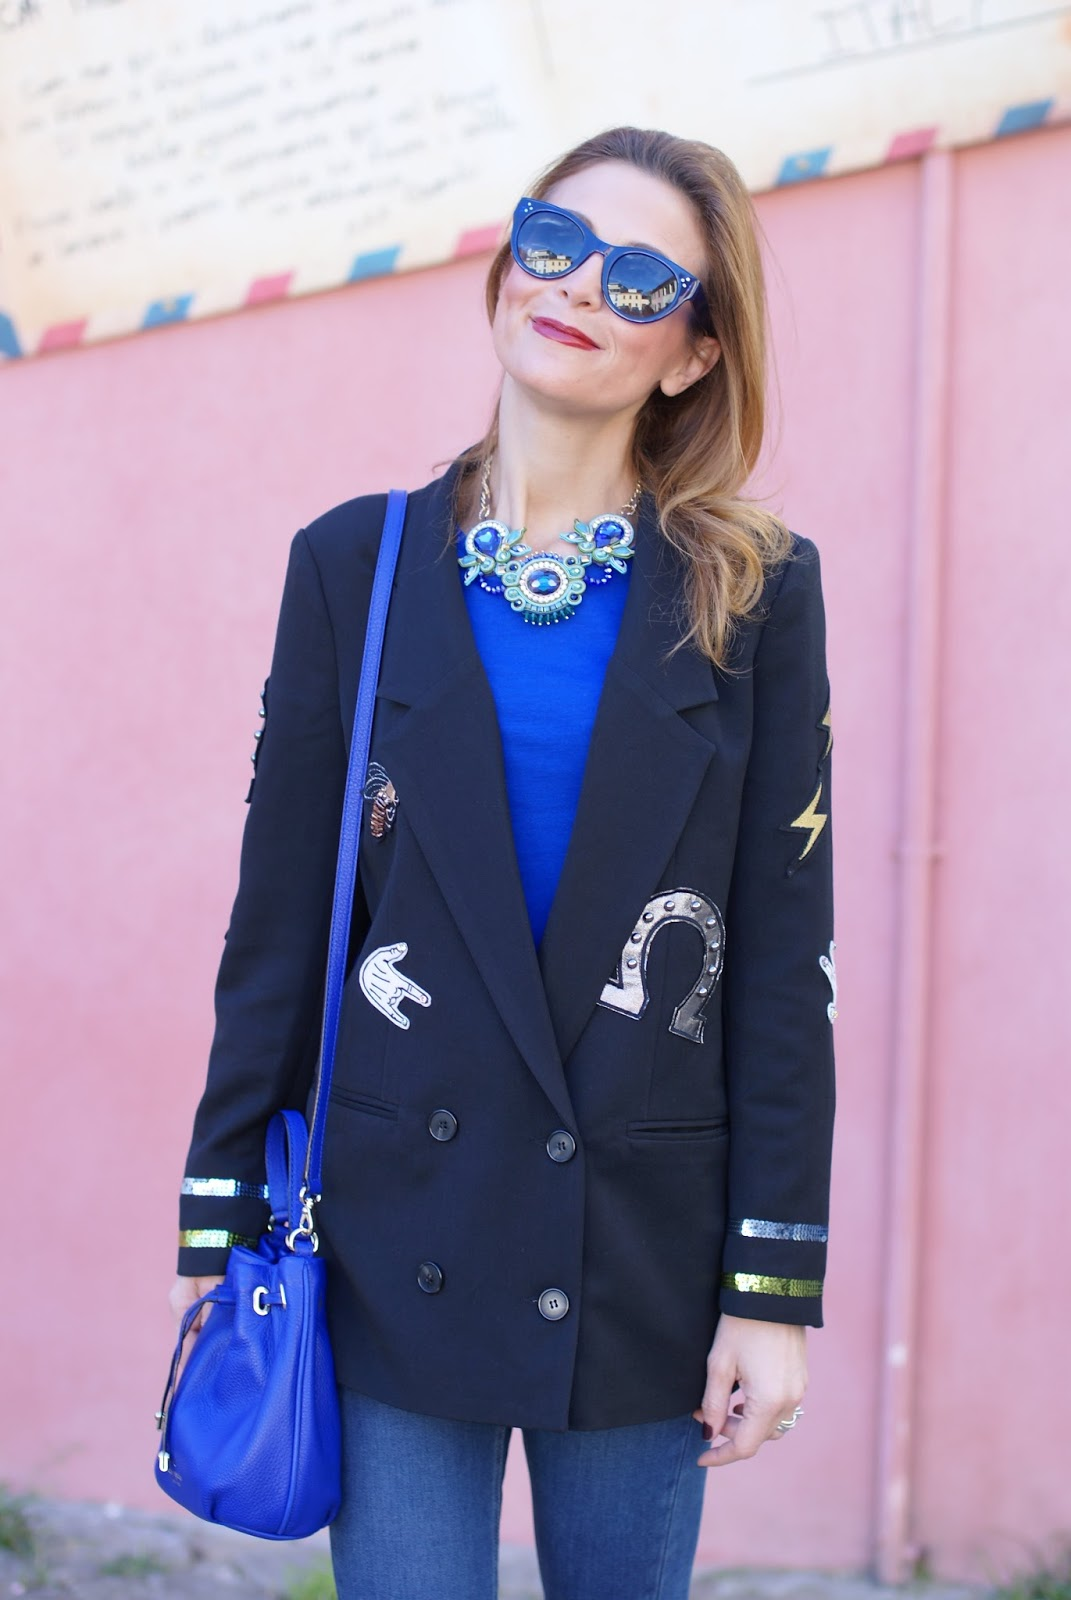 Vogos appliqued blazer with lucky charms and Kate Spade bag on Fashion and Cookies fashion blog, fashion blogger style